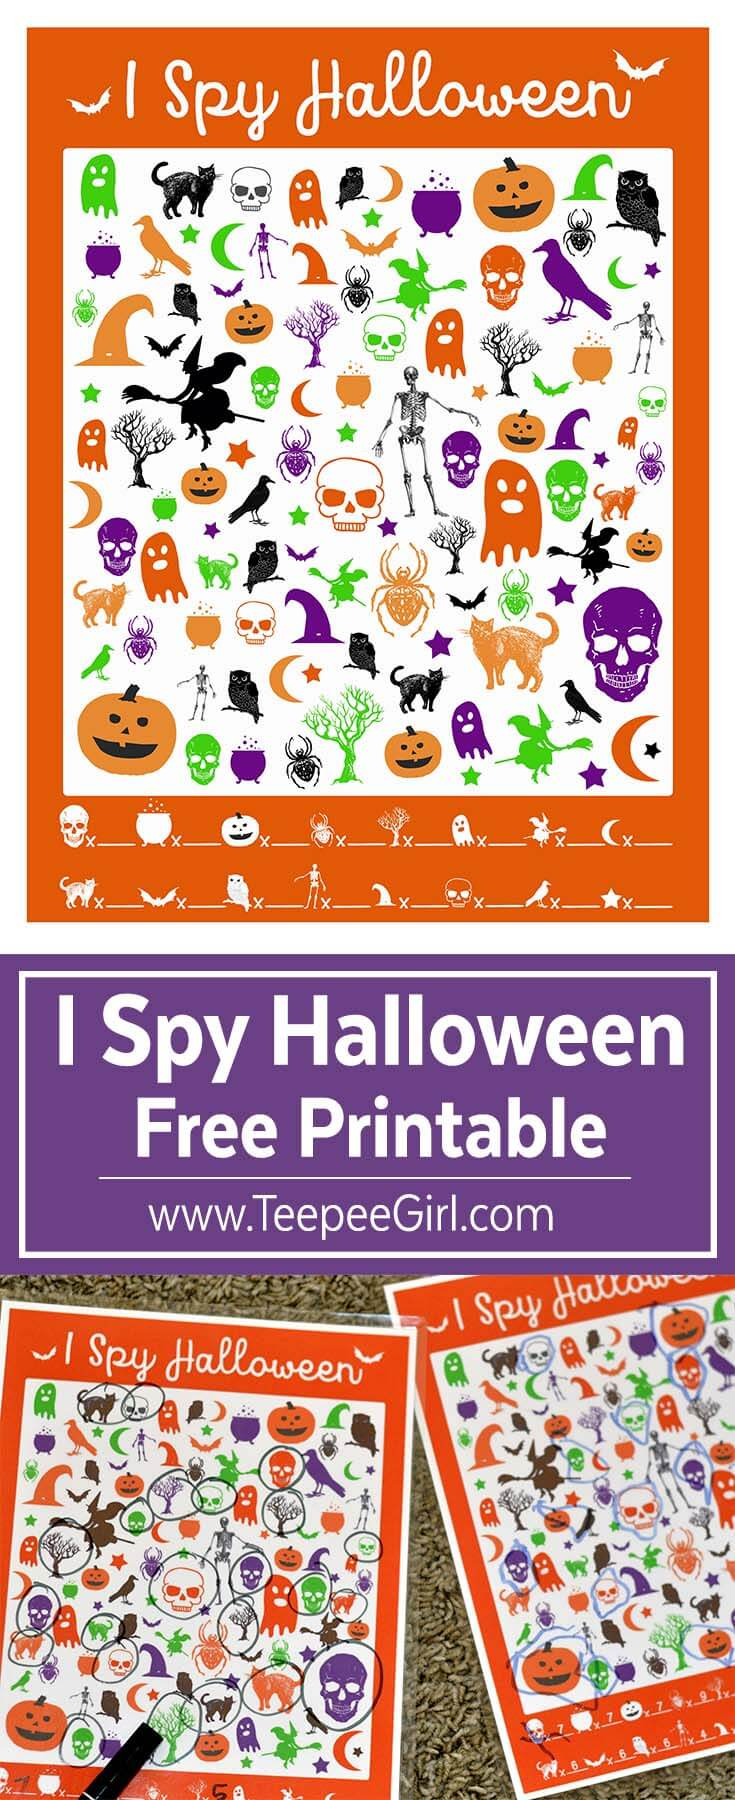 Invaluable image intended for i spy games printable